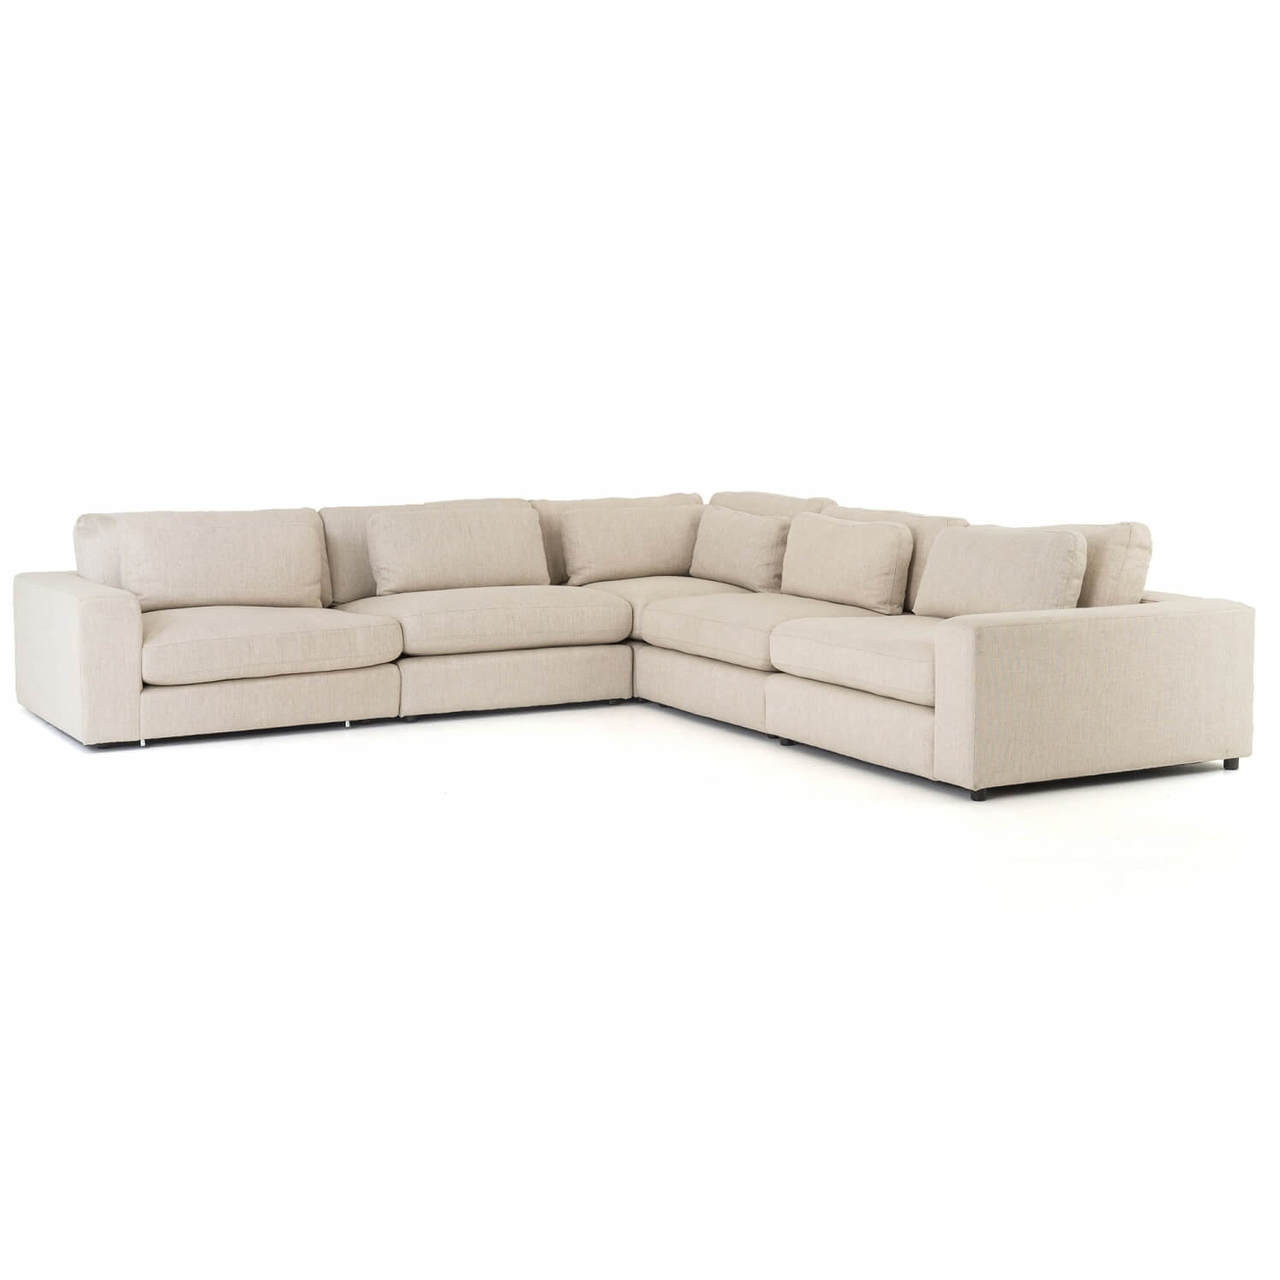 Bloor Contemporary Beige 5 Piece Corner Sectional Sofas 131\